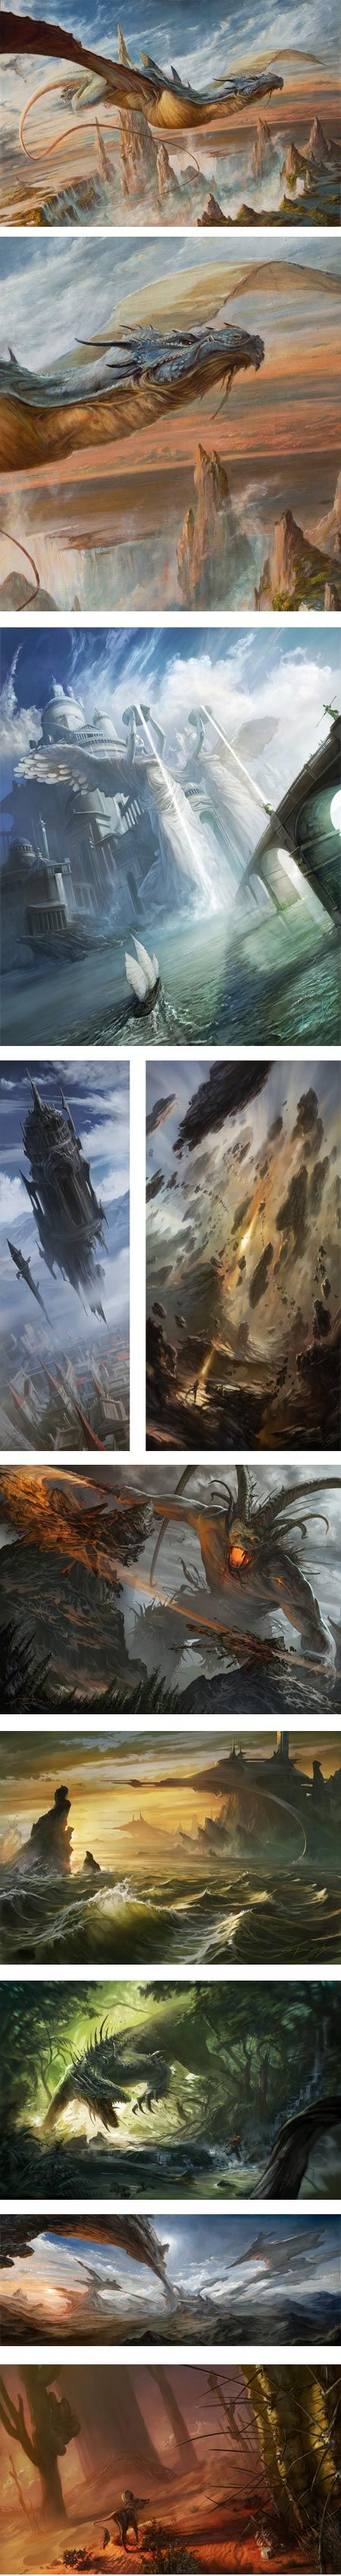 Sam Burley - illustrator who was formerly an matte painter